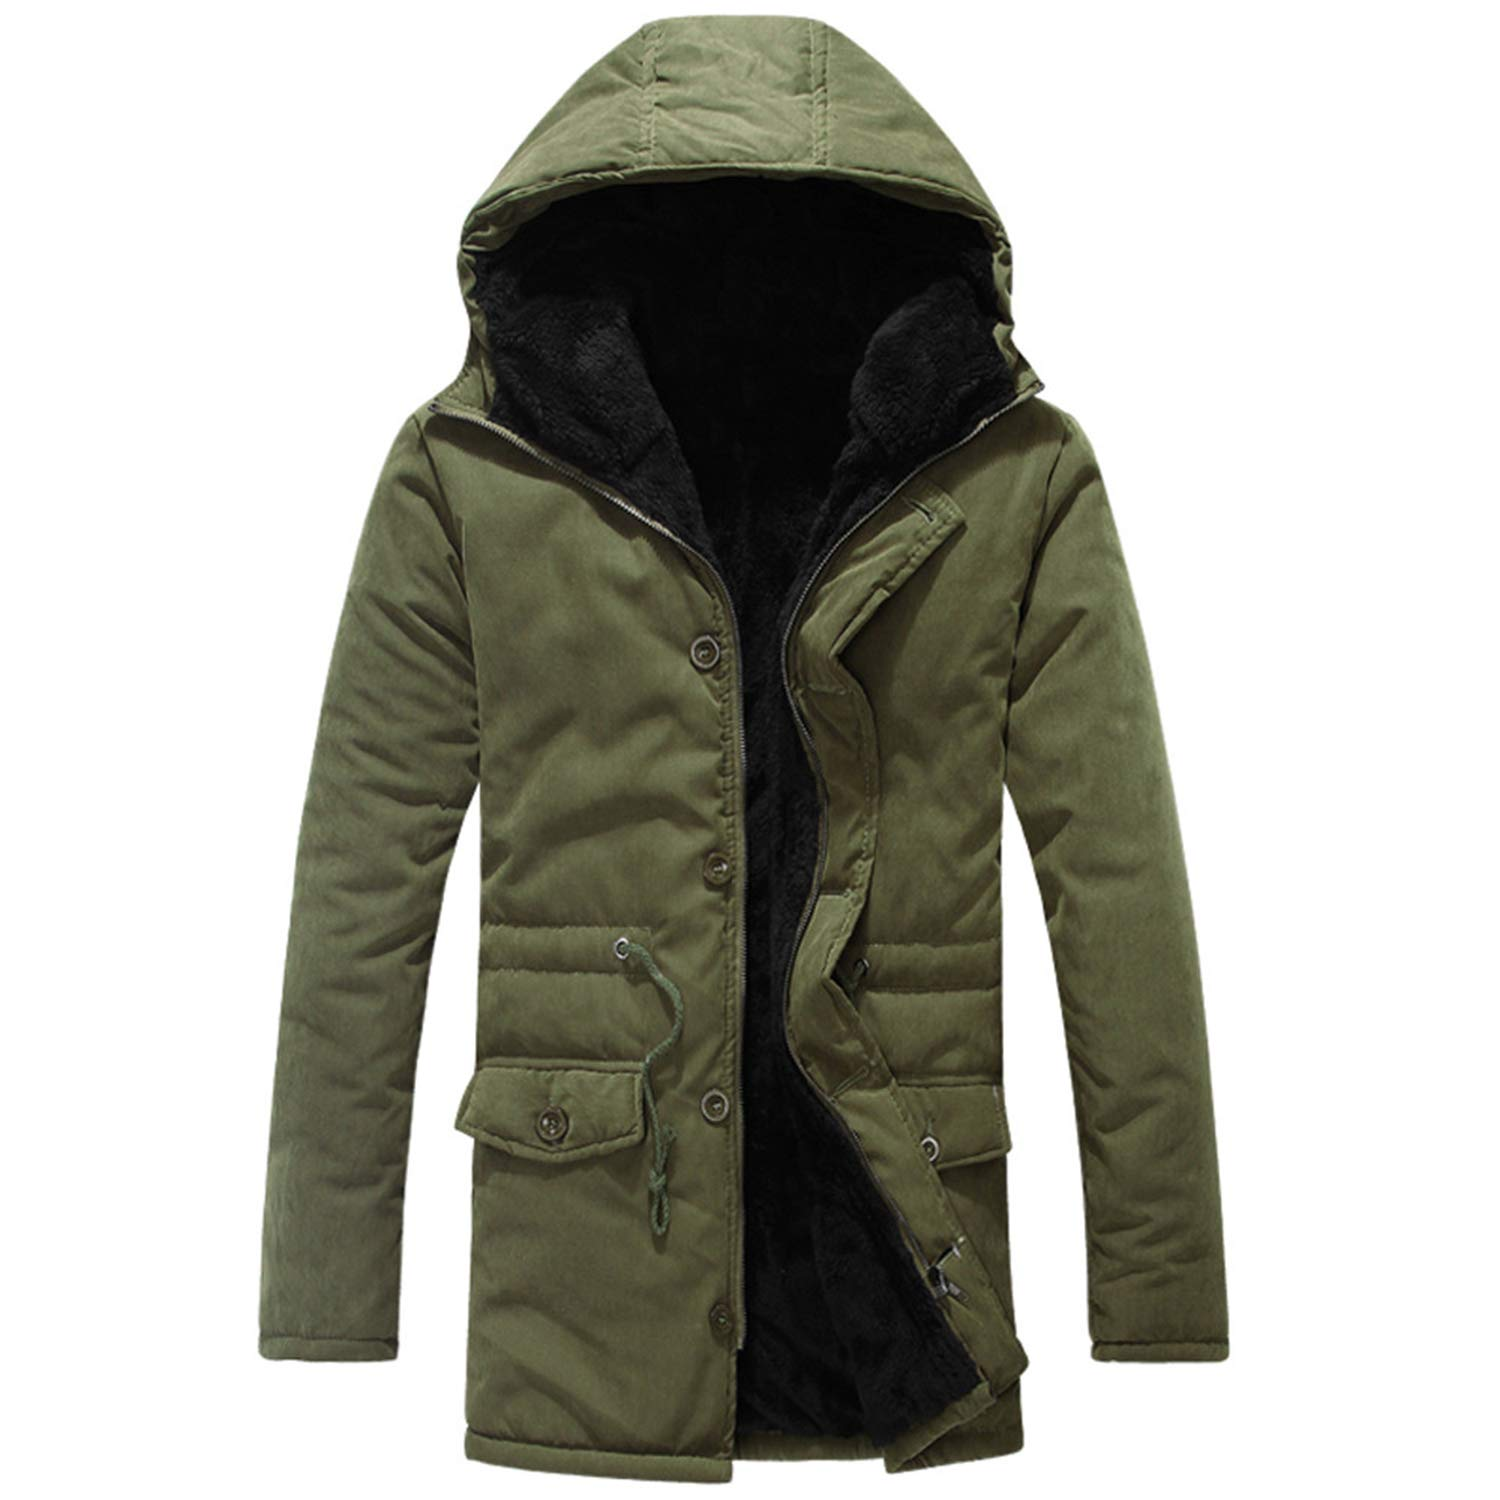 Army Green Medium dextrad fashionhoodies Jacket Men Winter Leisure Pure color Hoodie Thicker Velvet Cotton Coat Jacket